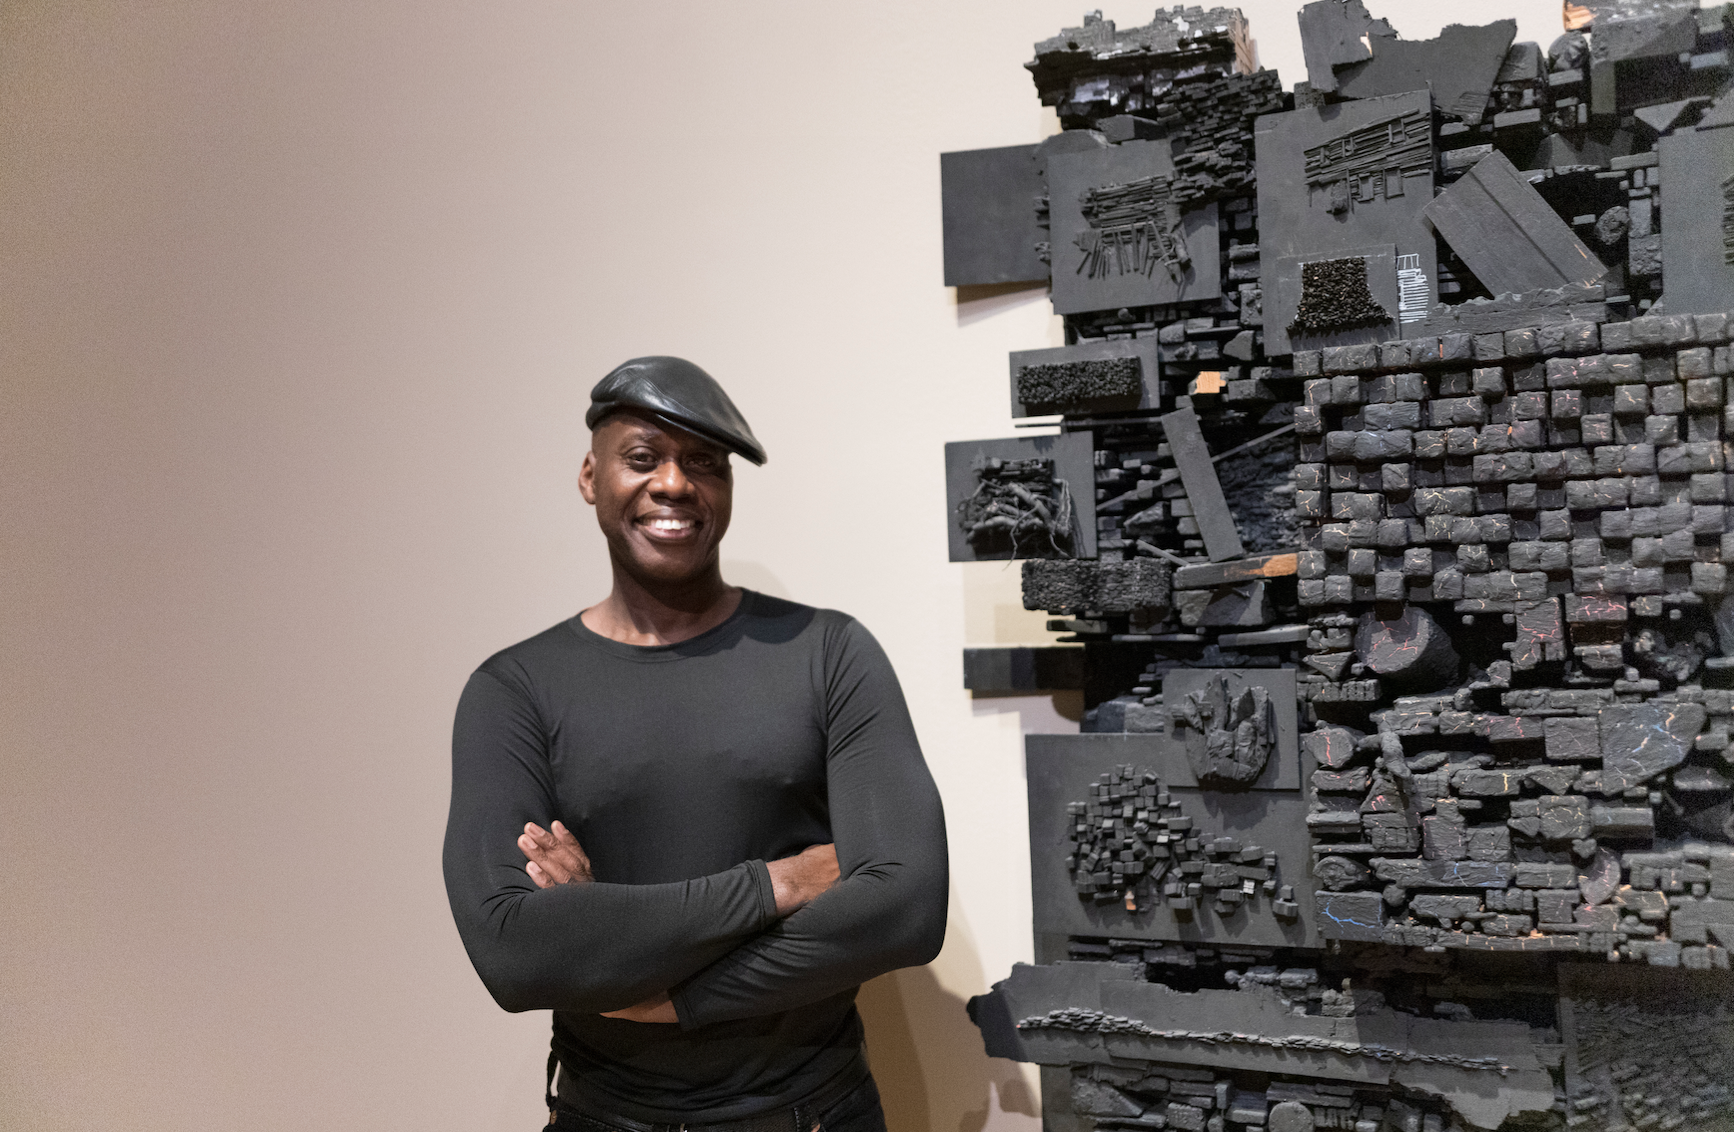 Photograph of artist Leonardo Drew next to his sculpture made of black wood pieces